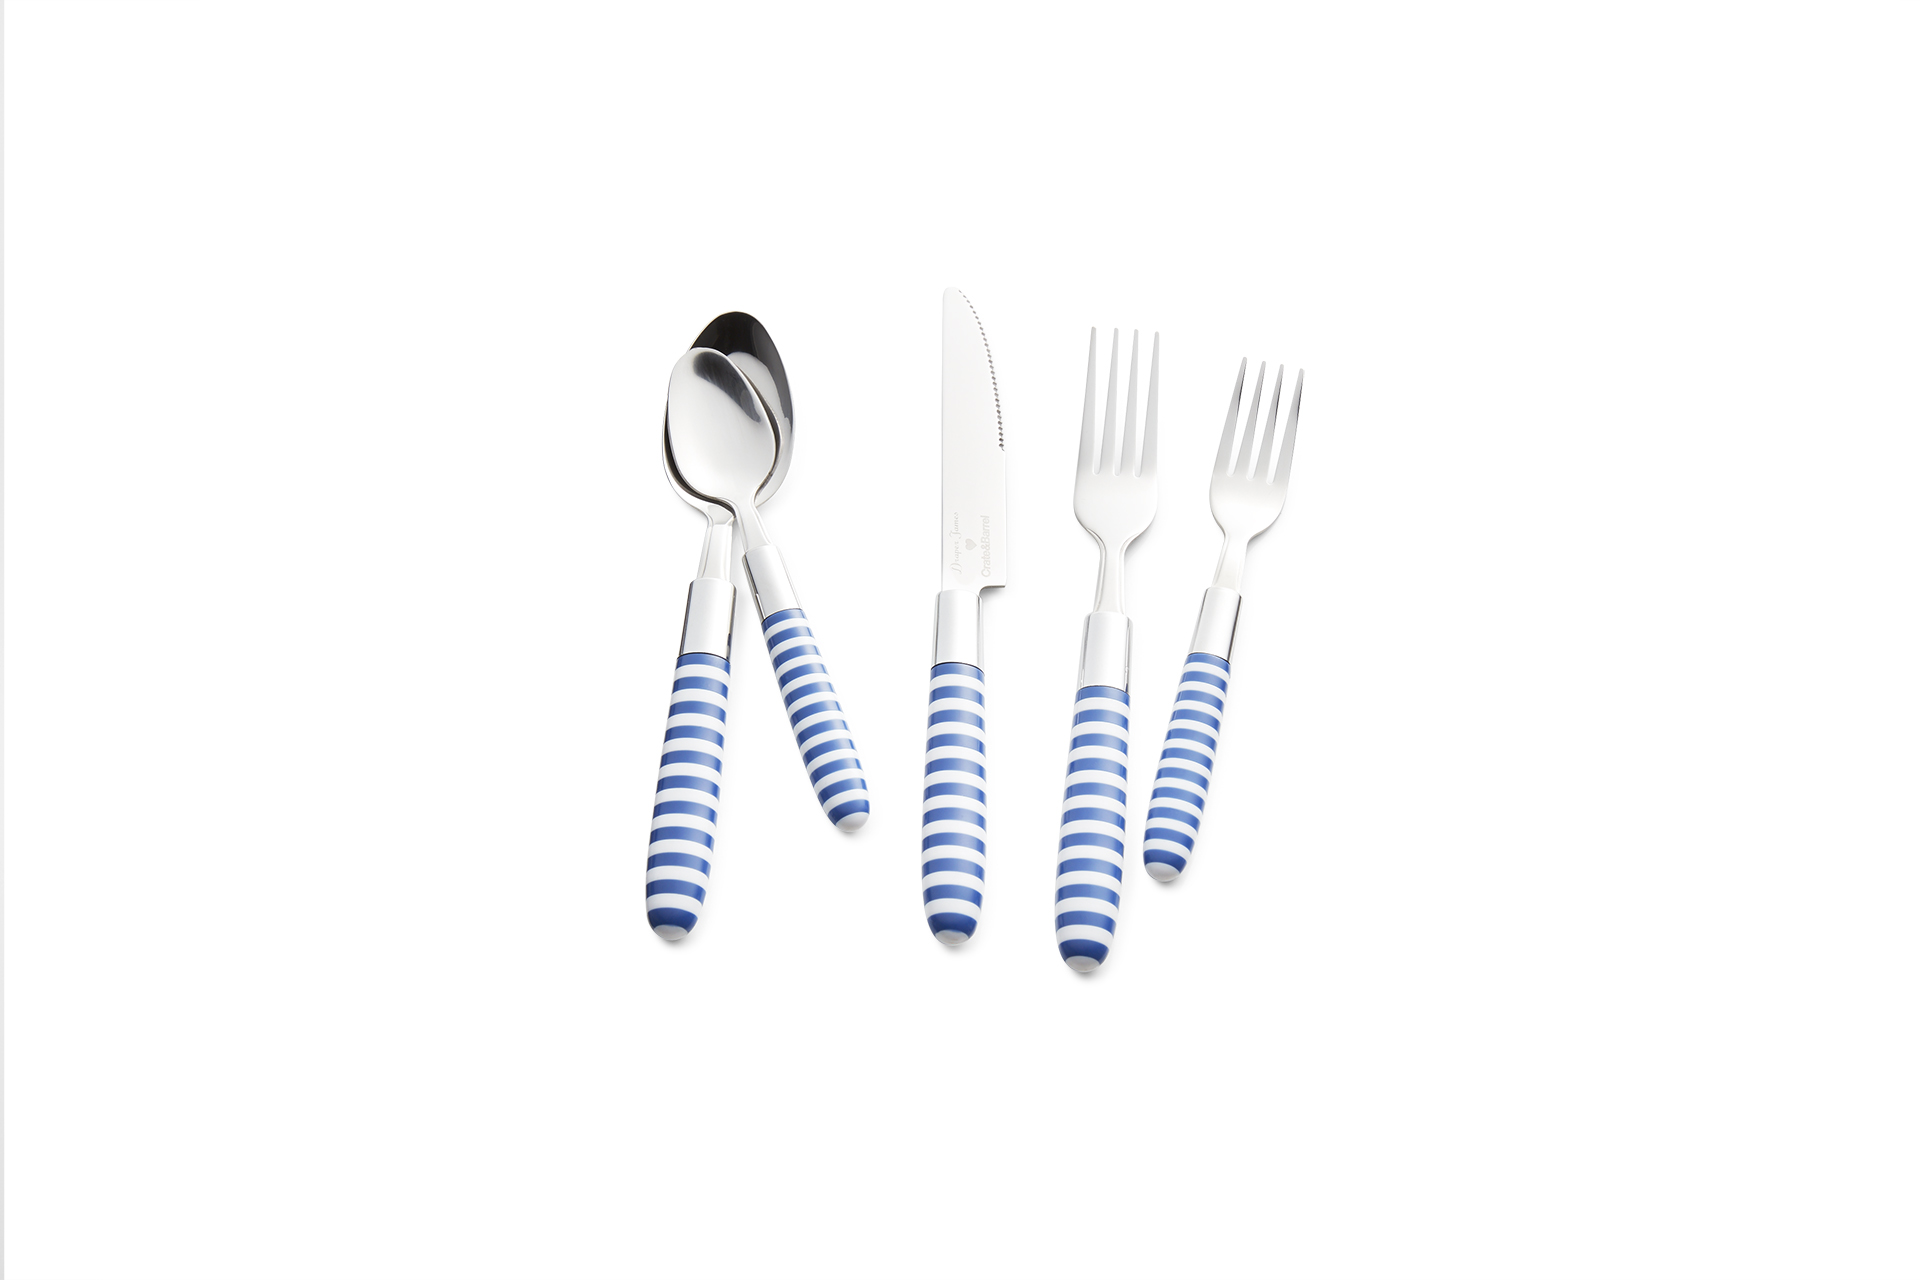 Blue and White Striped Flatware